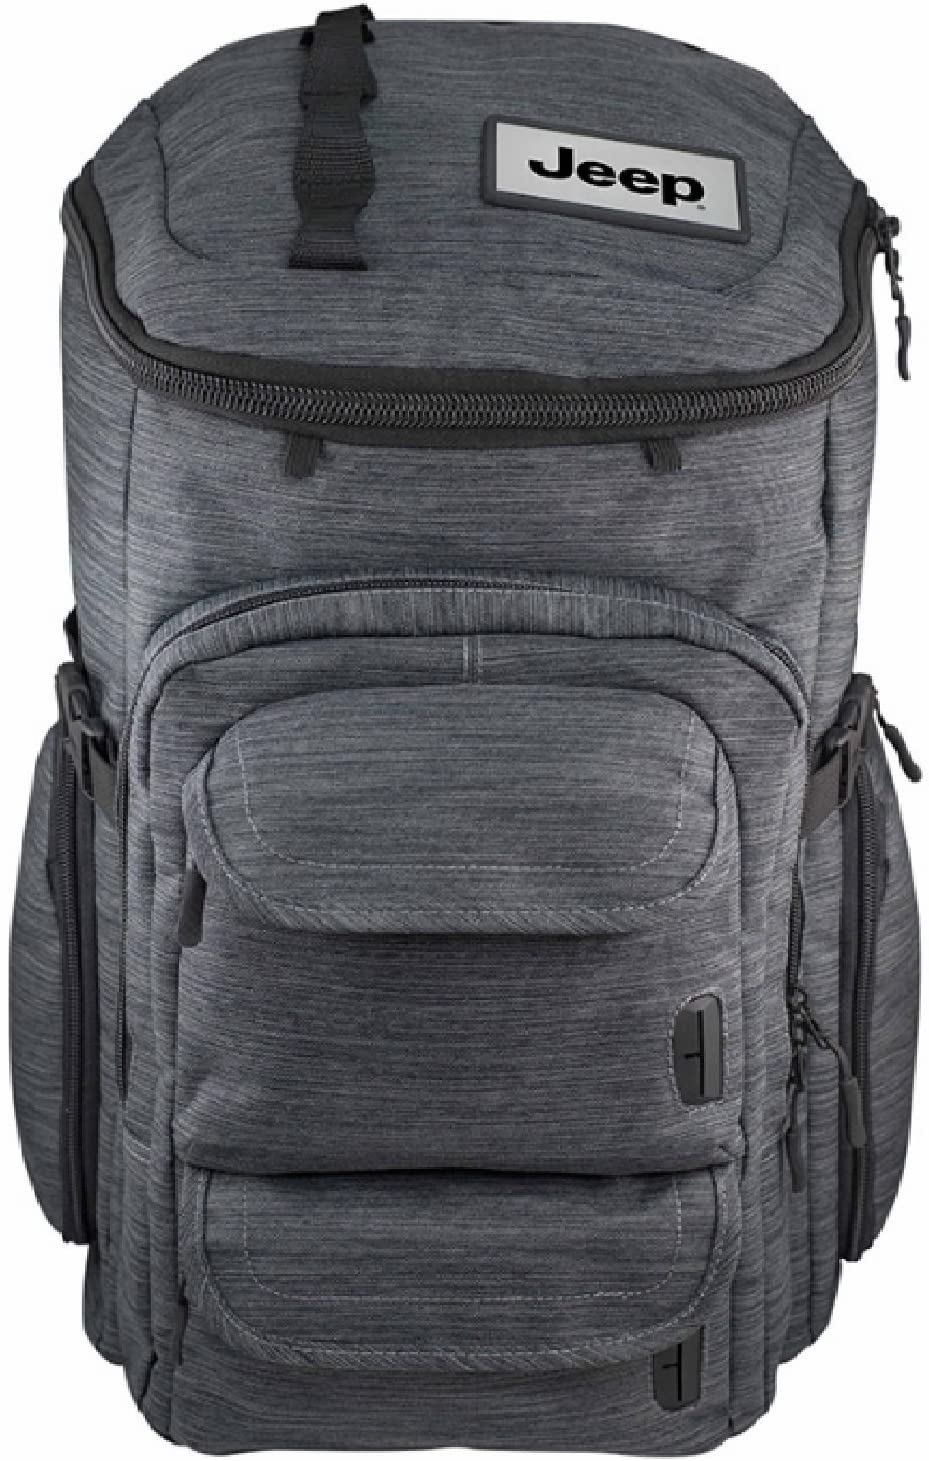 Jeep Mission Tech Pack